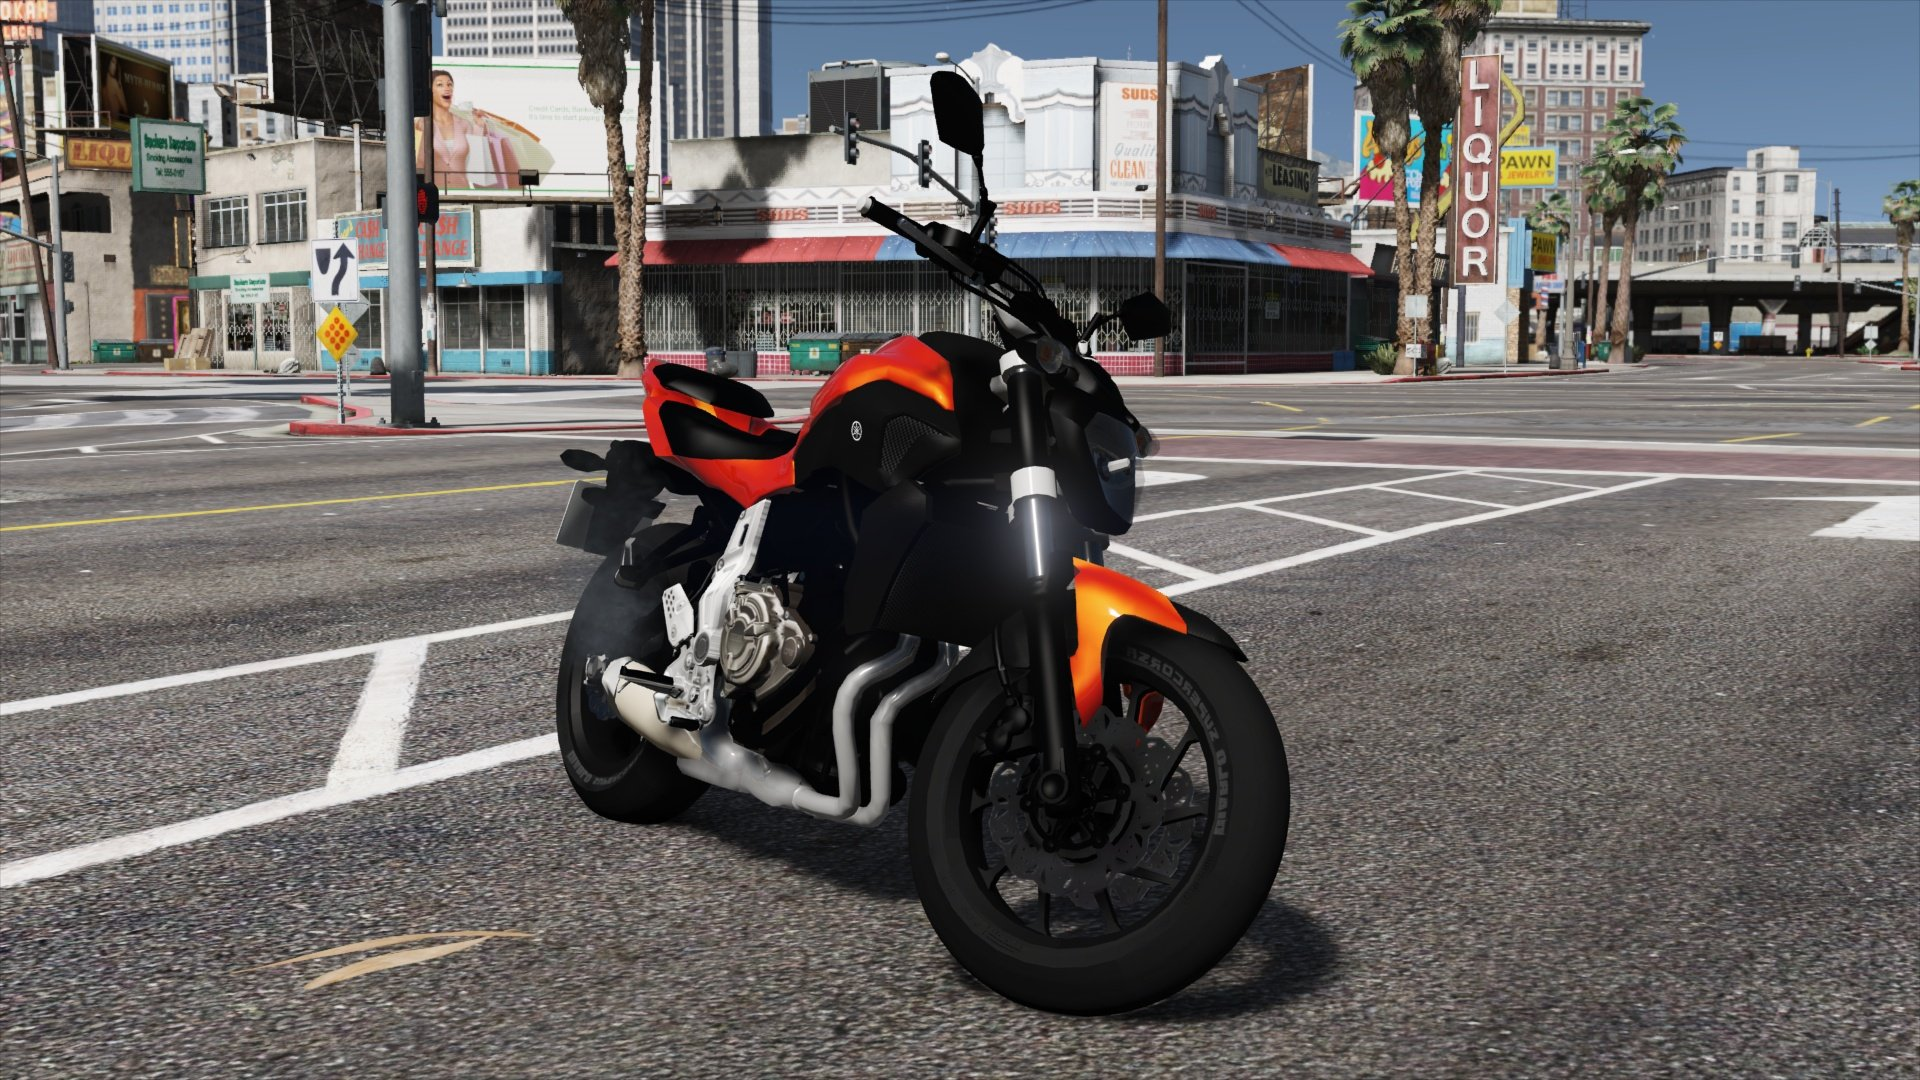 772206 Mio 125 M3 2 also Autocollant Moto Yamaha Mt 03 Logo 28837 further Gallery Ipd Graphics Superjet Squarenose Transformation also Andres Triumph Thruxton Cafe Racer as well 4695 Yamaha Mt 07 Fz 07 Add On Replace. on yamaha decals